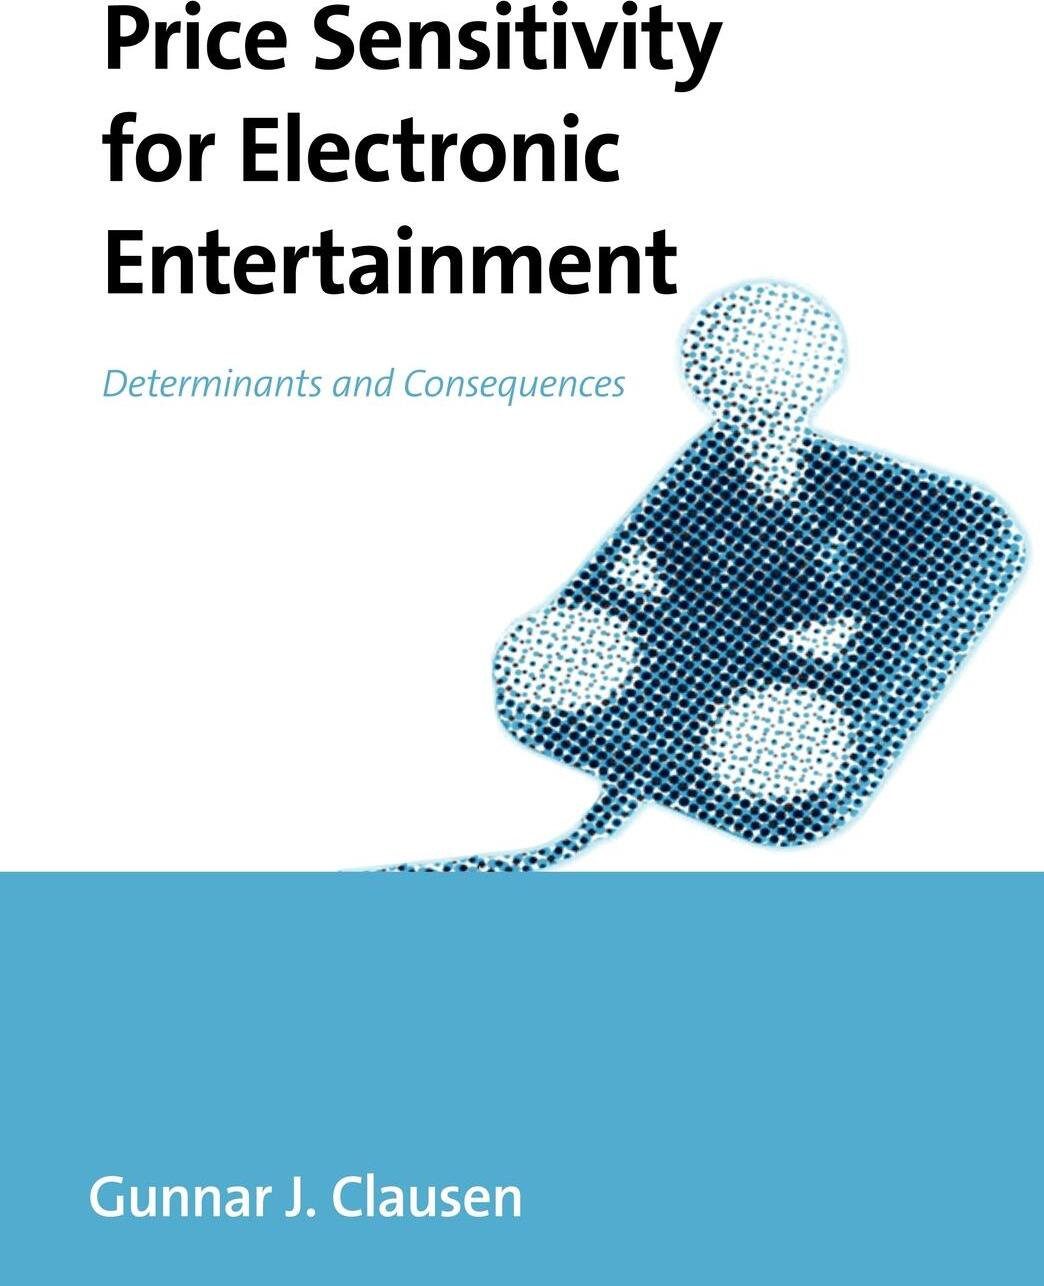 Price Sensitivity for Electronic Entertainment. Determinants and Consequences